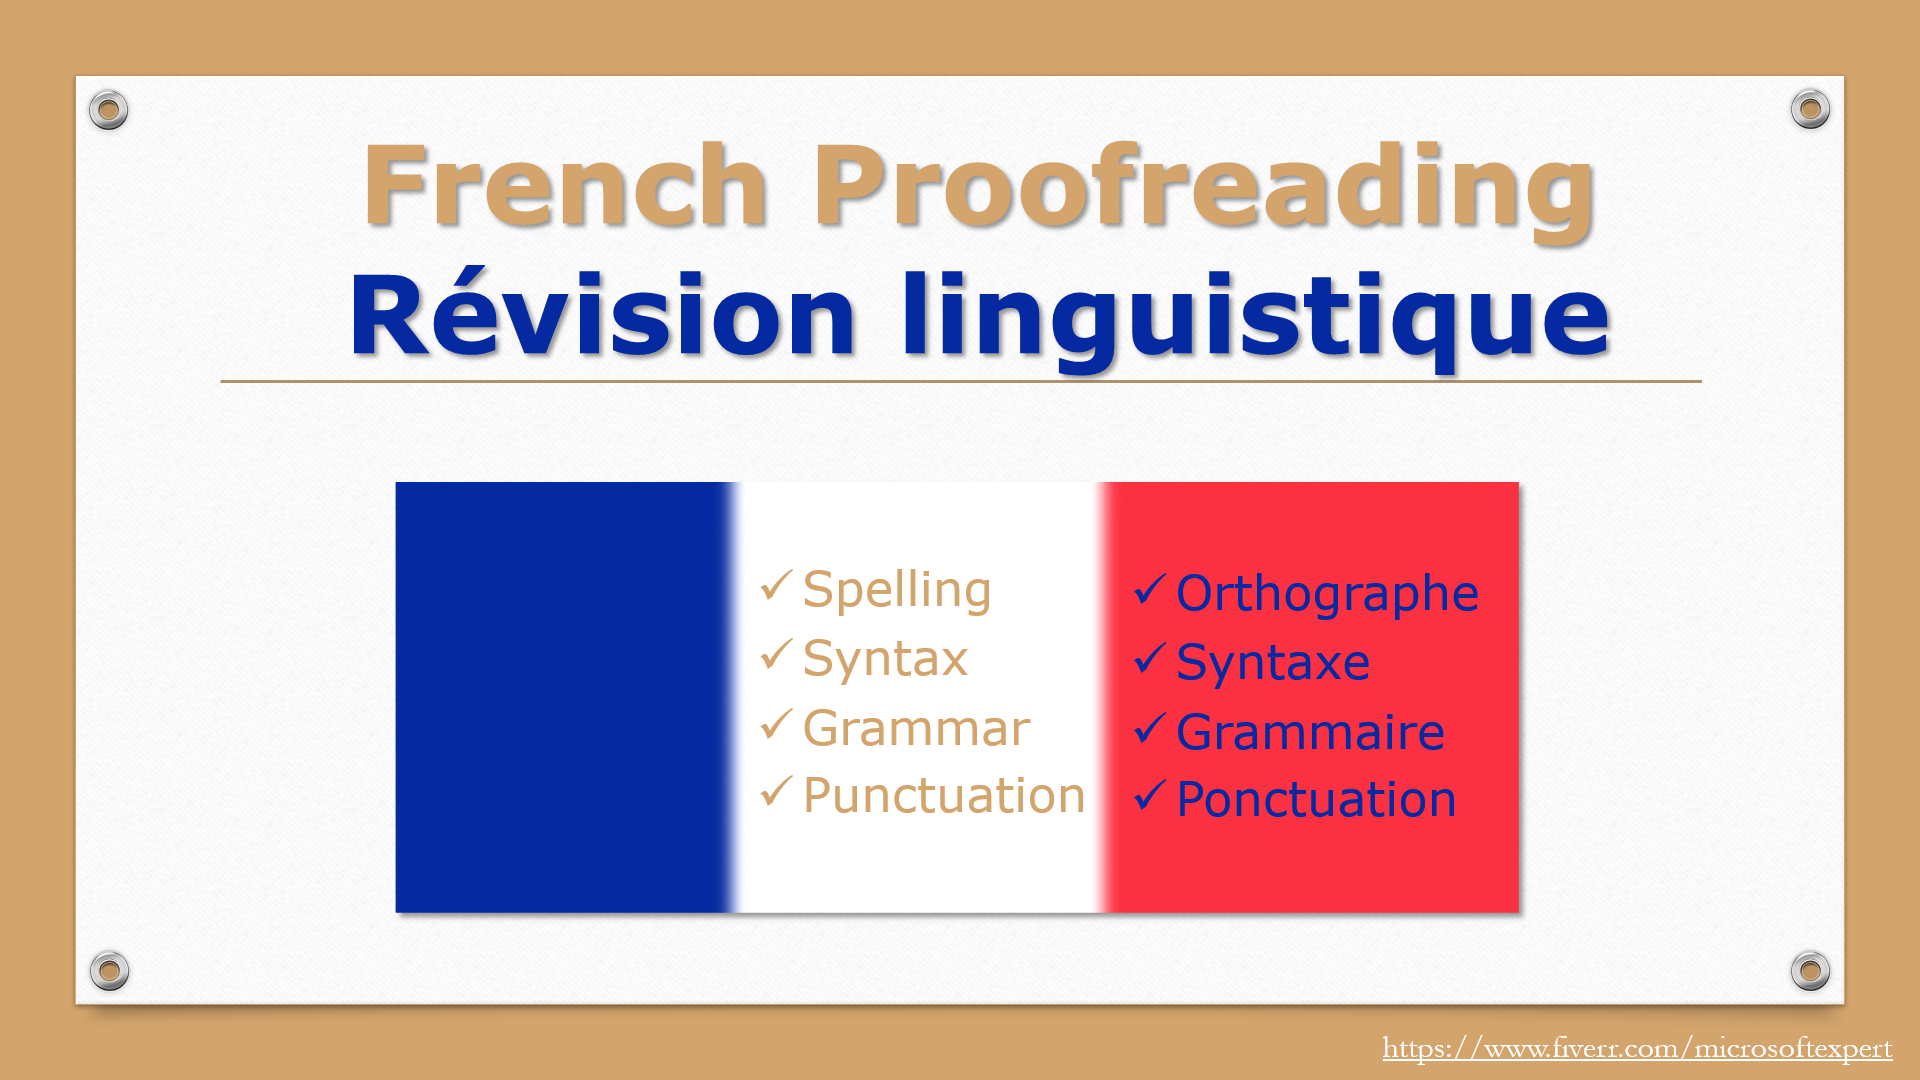 proofread up to 500 French words